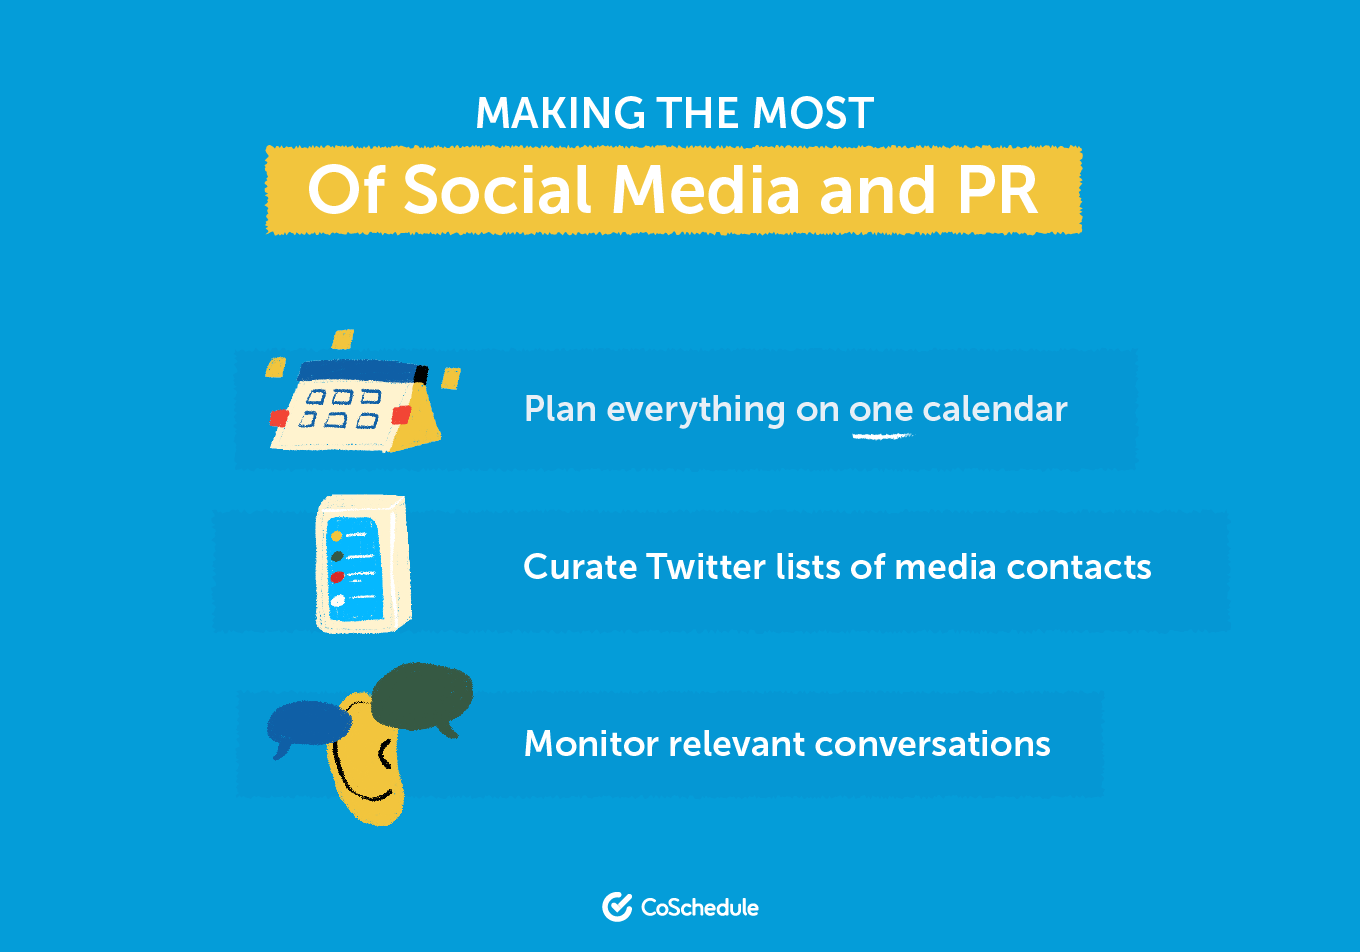 Making the most of social media and PR